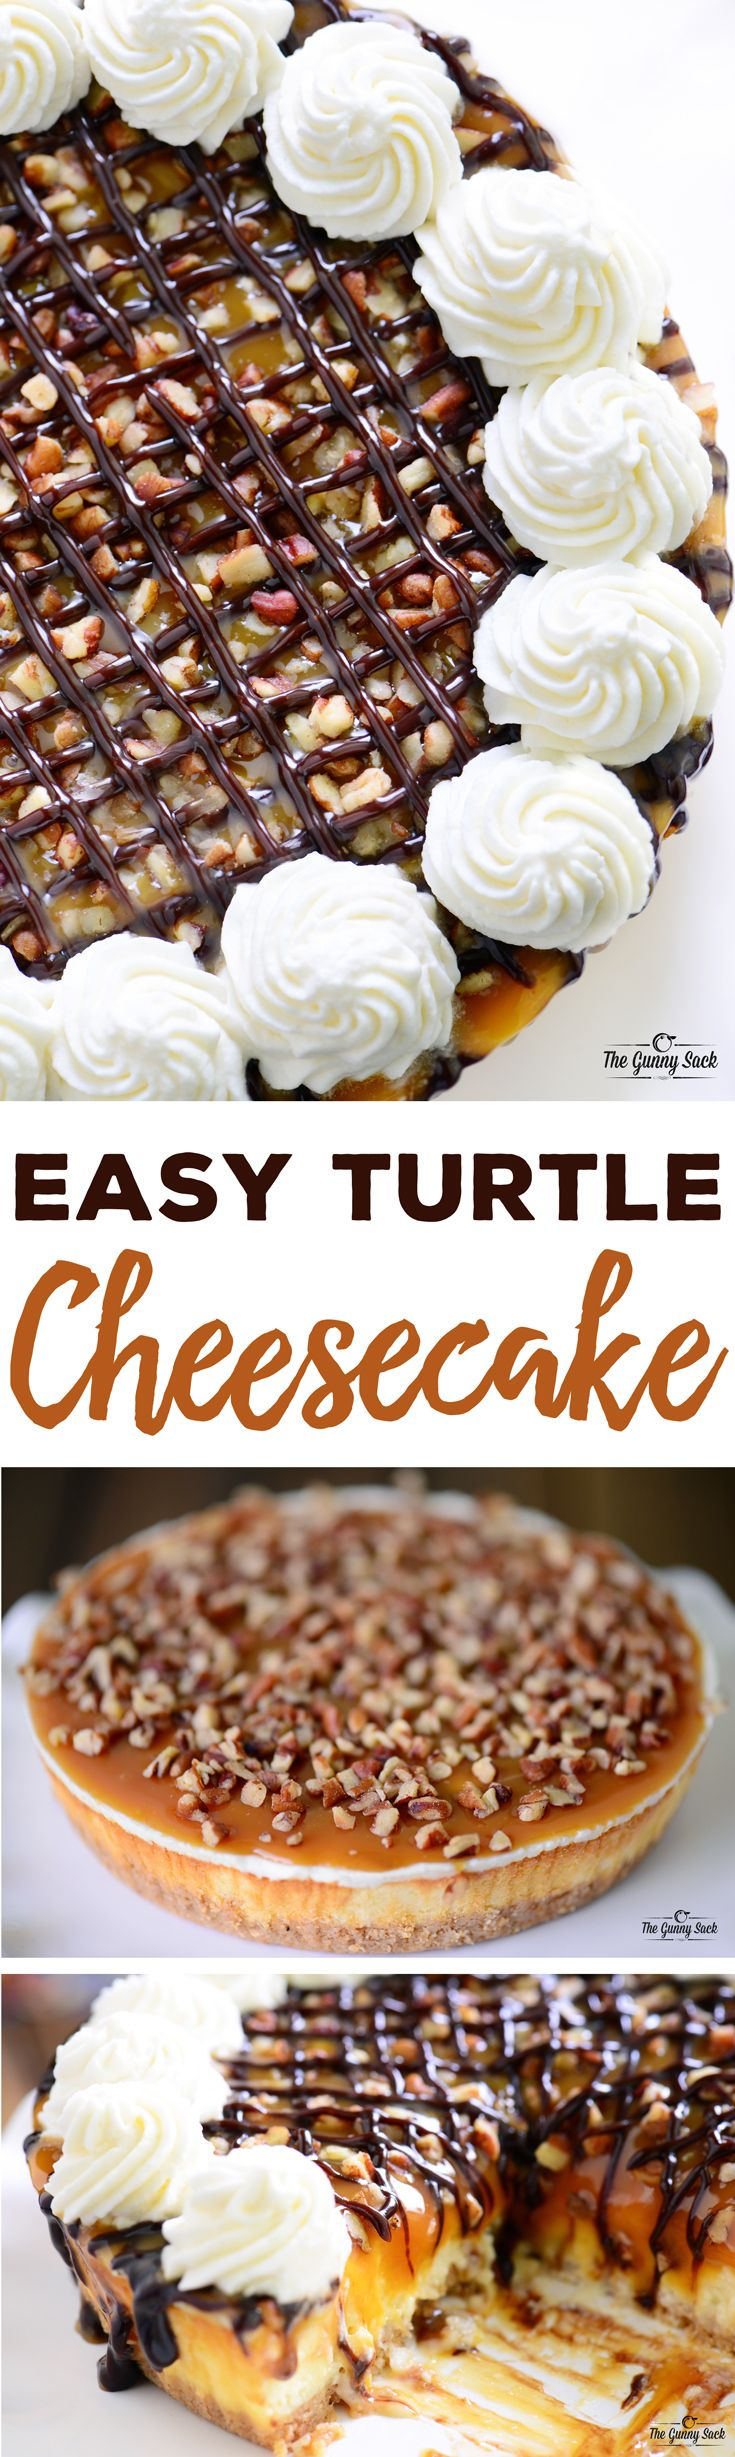 Easy turtle cheesecake recipe made from a Sara Lee Original Cream Cheesecake. Top it with chocolate, caramel, pecans and whipped cream. Great for the holidays! #UniquelyYours Sponsored by Sara Lee® (Icecream Recipes Cheesecake)